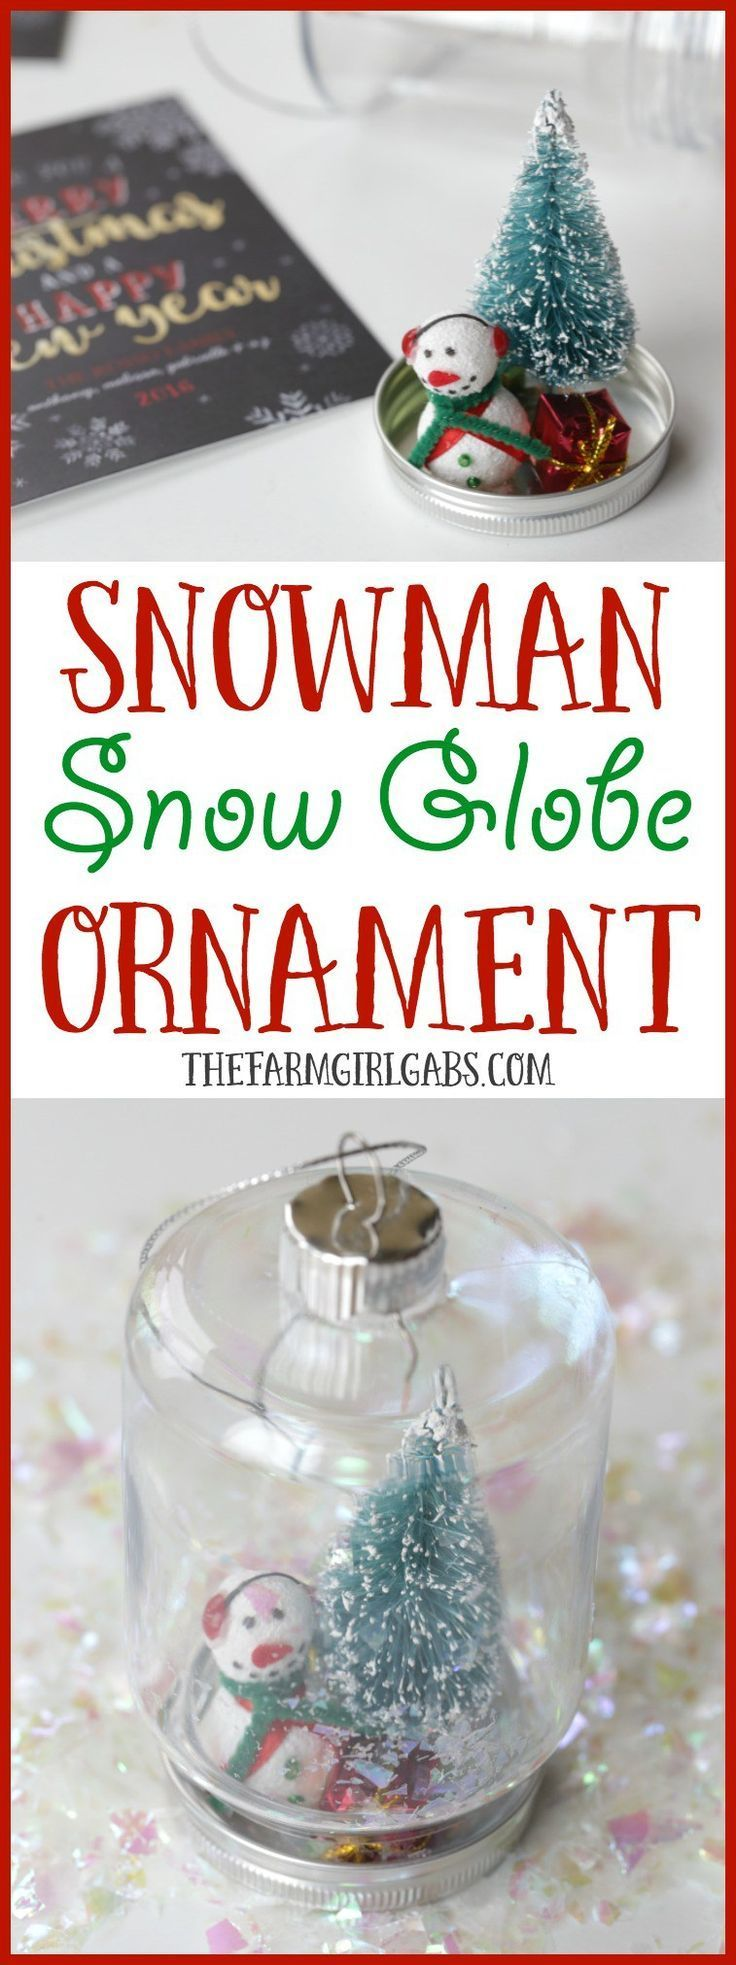 This DIY Snowman Snow Globe Ornament is an easy holiday craft to give along with your family Christmas card.